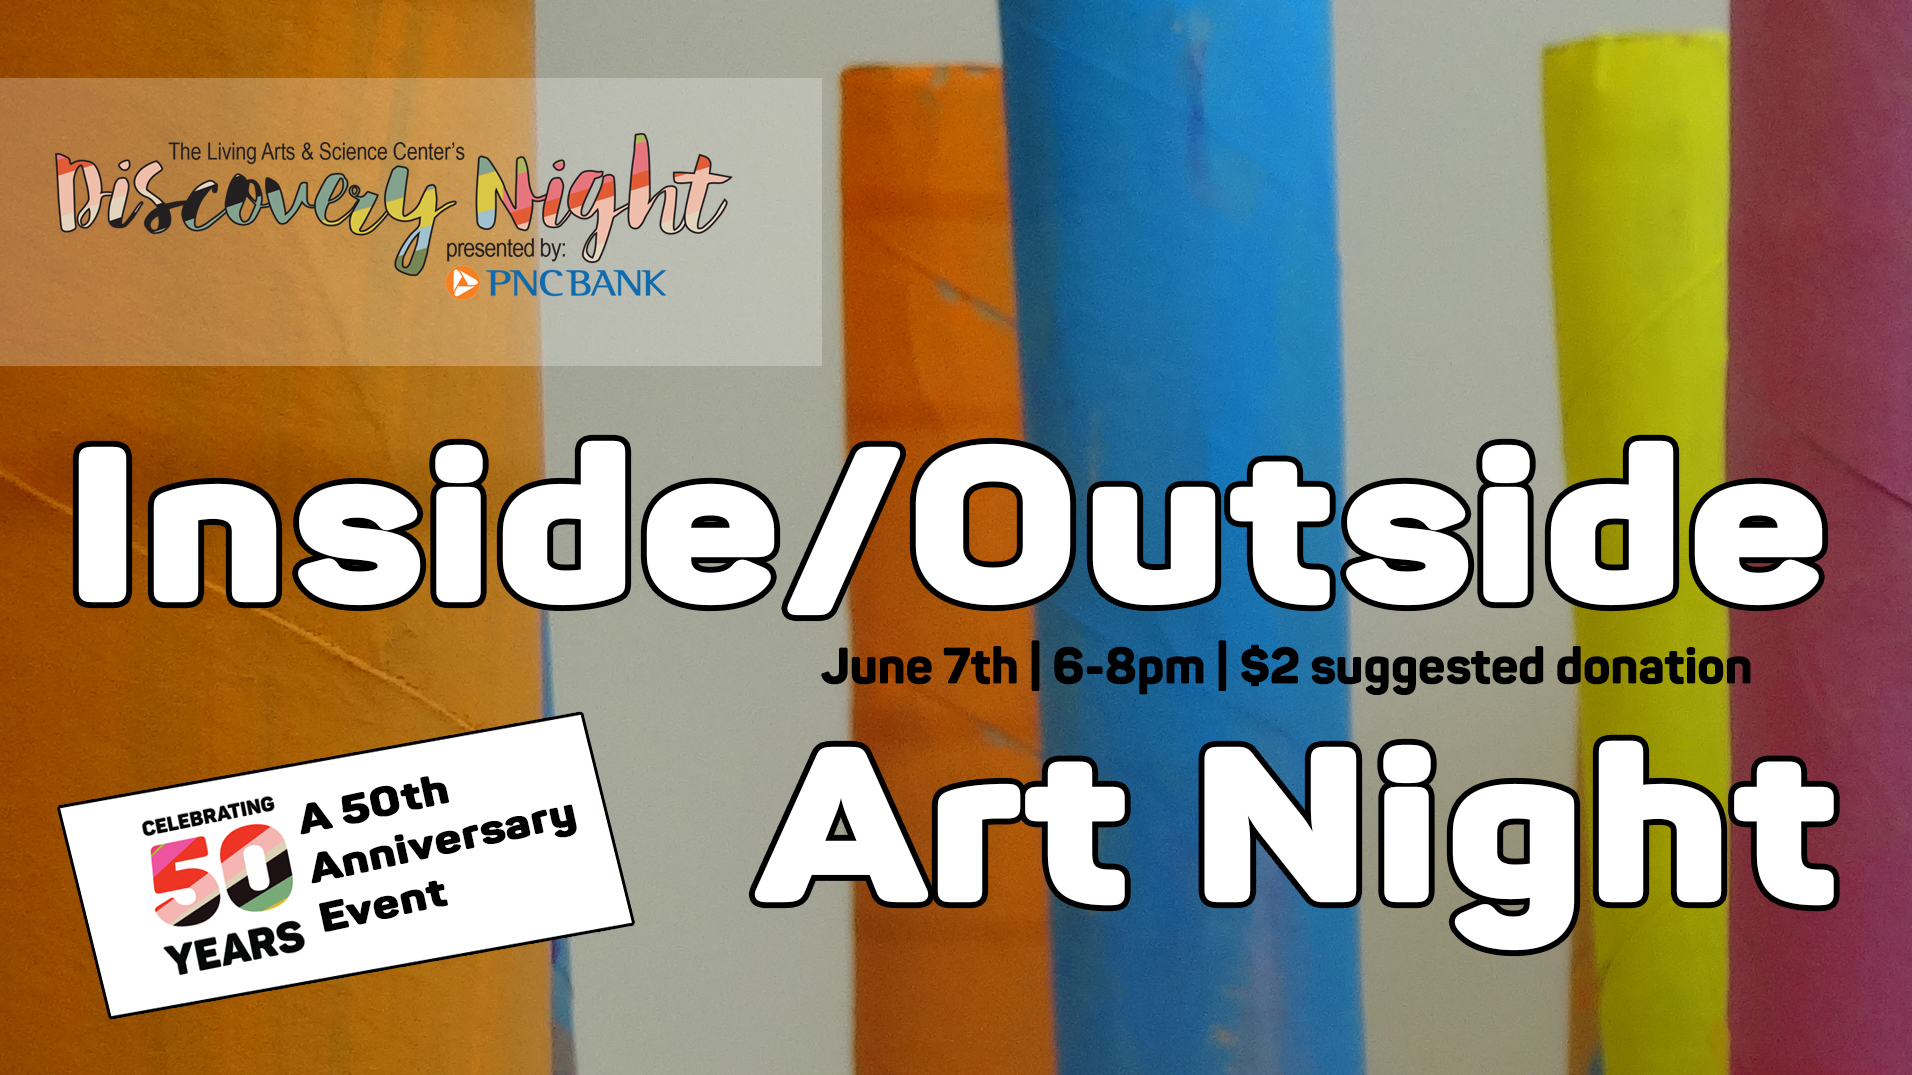 Discovery Night: Inside/Outside Art Night